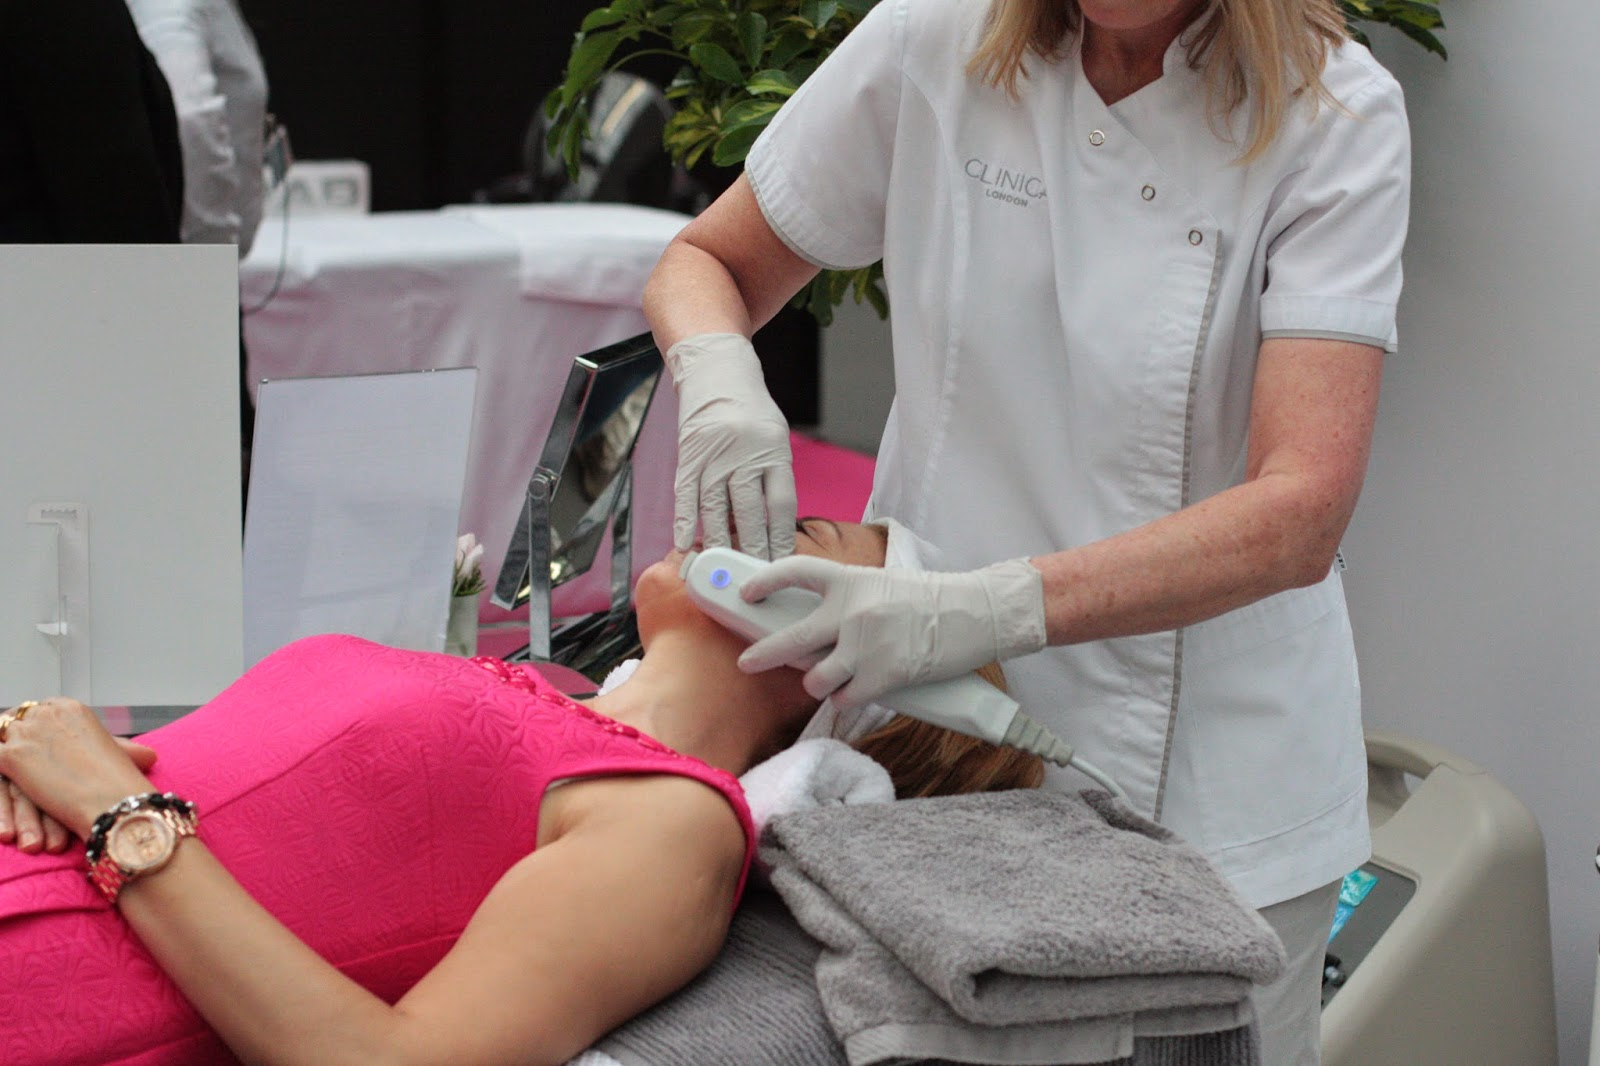 Ultherapy demonstration at the anti-ageing show